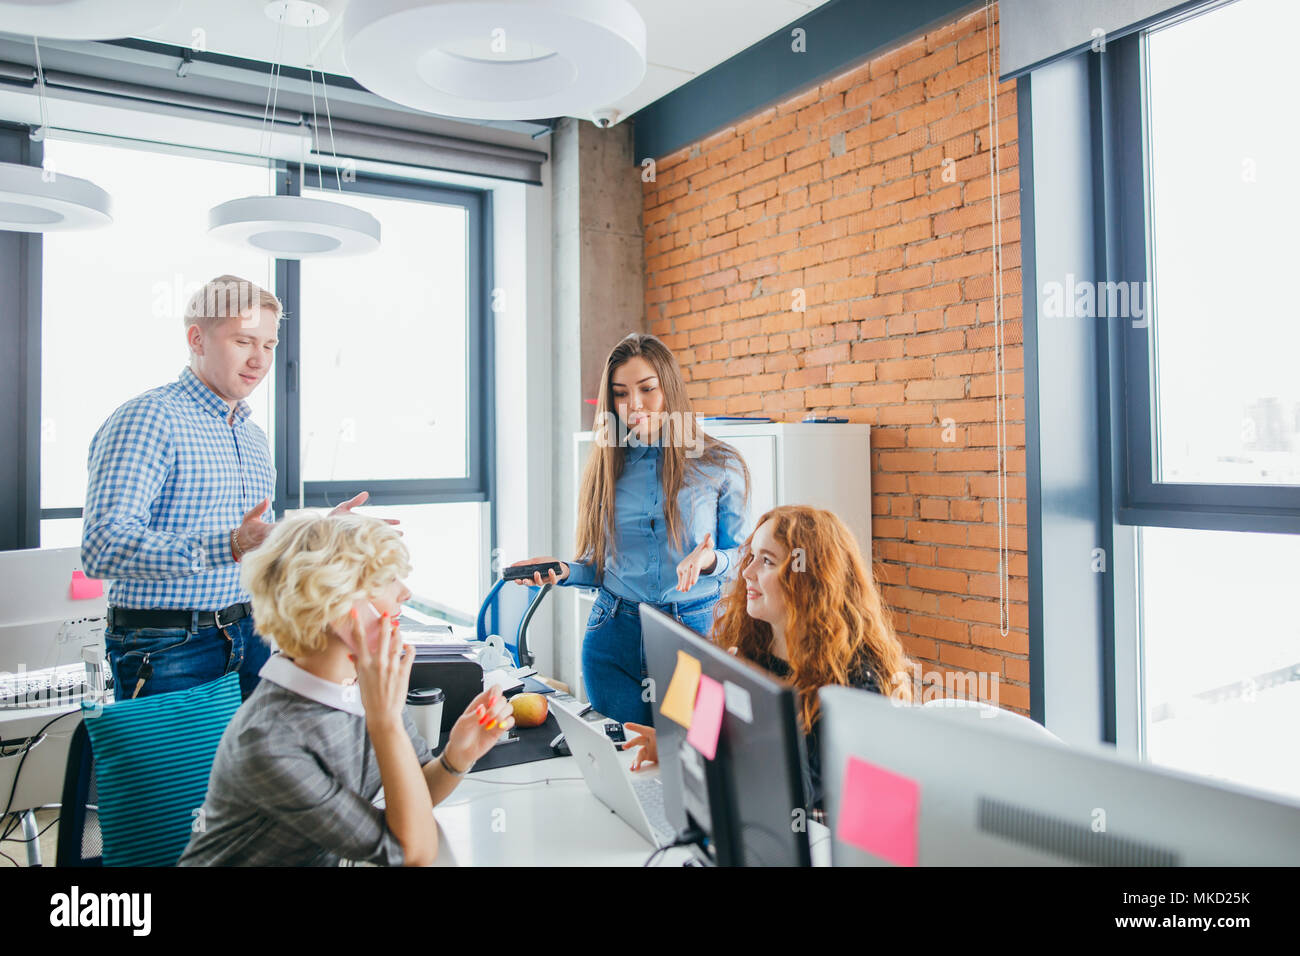 how to set up a small business in ontario